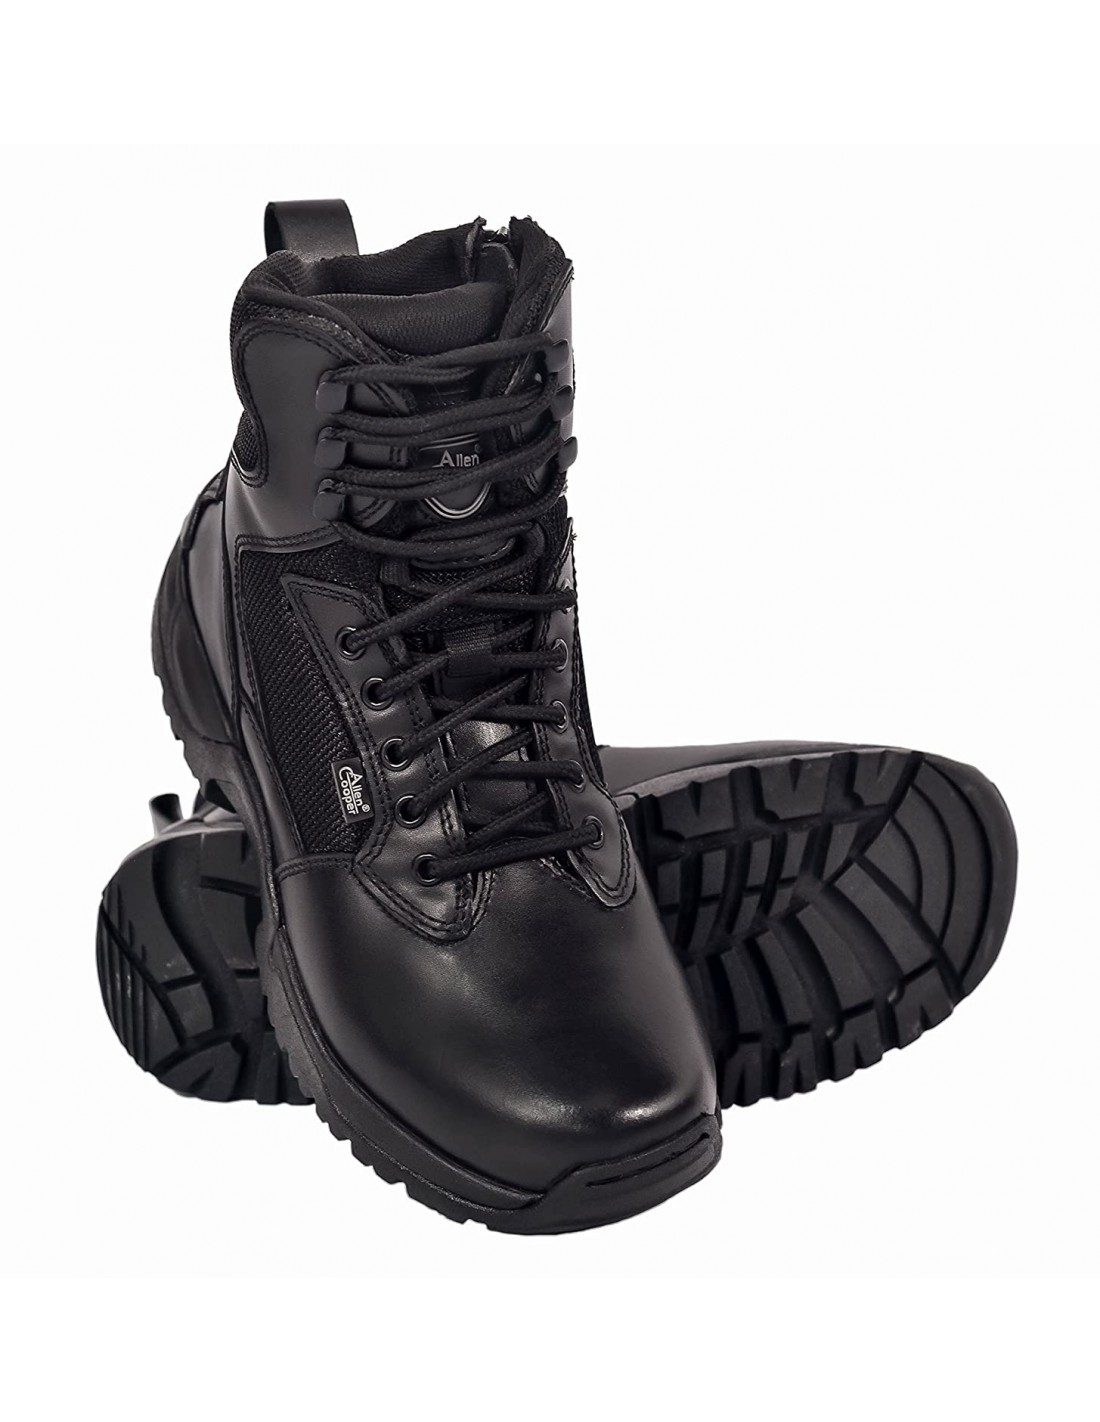 a7aa0085a91 Allen Cooper AC-1157 Sports Series Safety Ankle Boot 82153